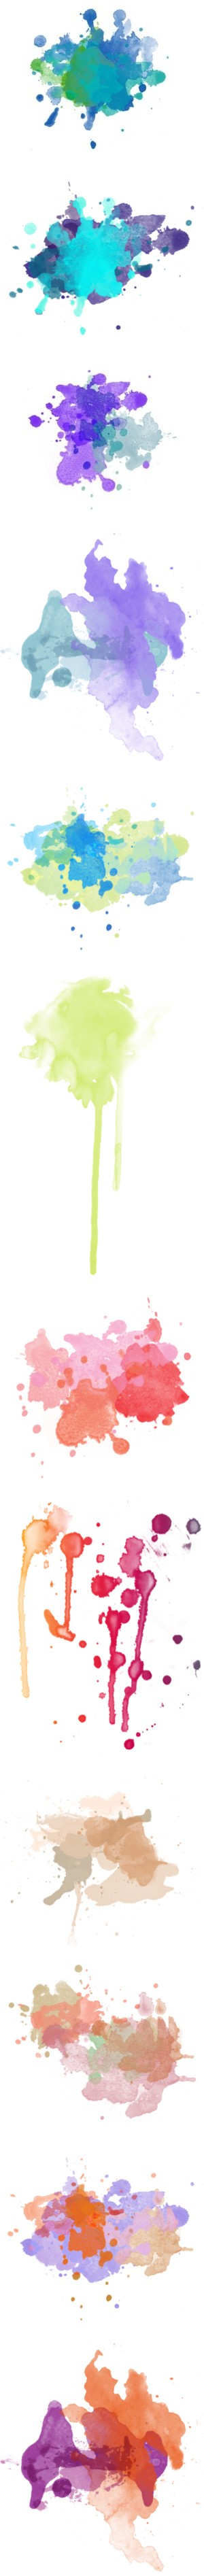 Ink Spalshes by sylandrya on Polyvore featuring splashes, fillers, polypaint, backgrounds, paint splashes, effects, paint, textures, embellishments and doodles